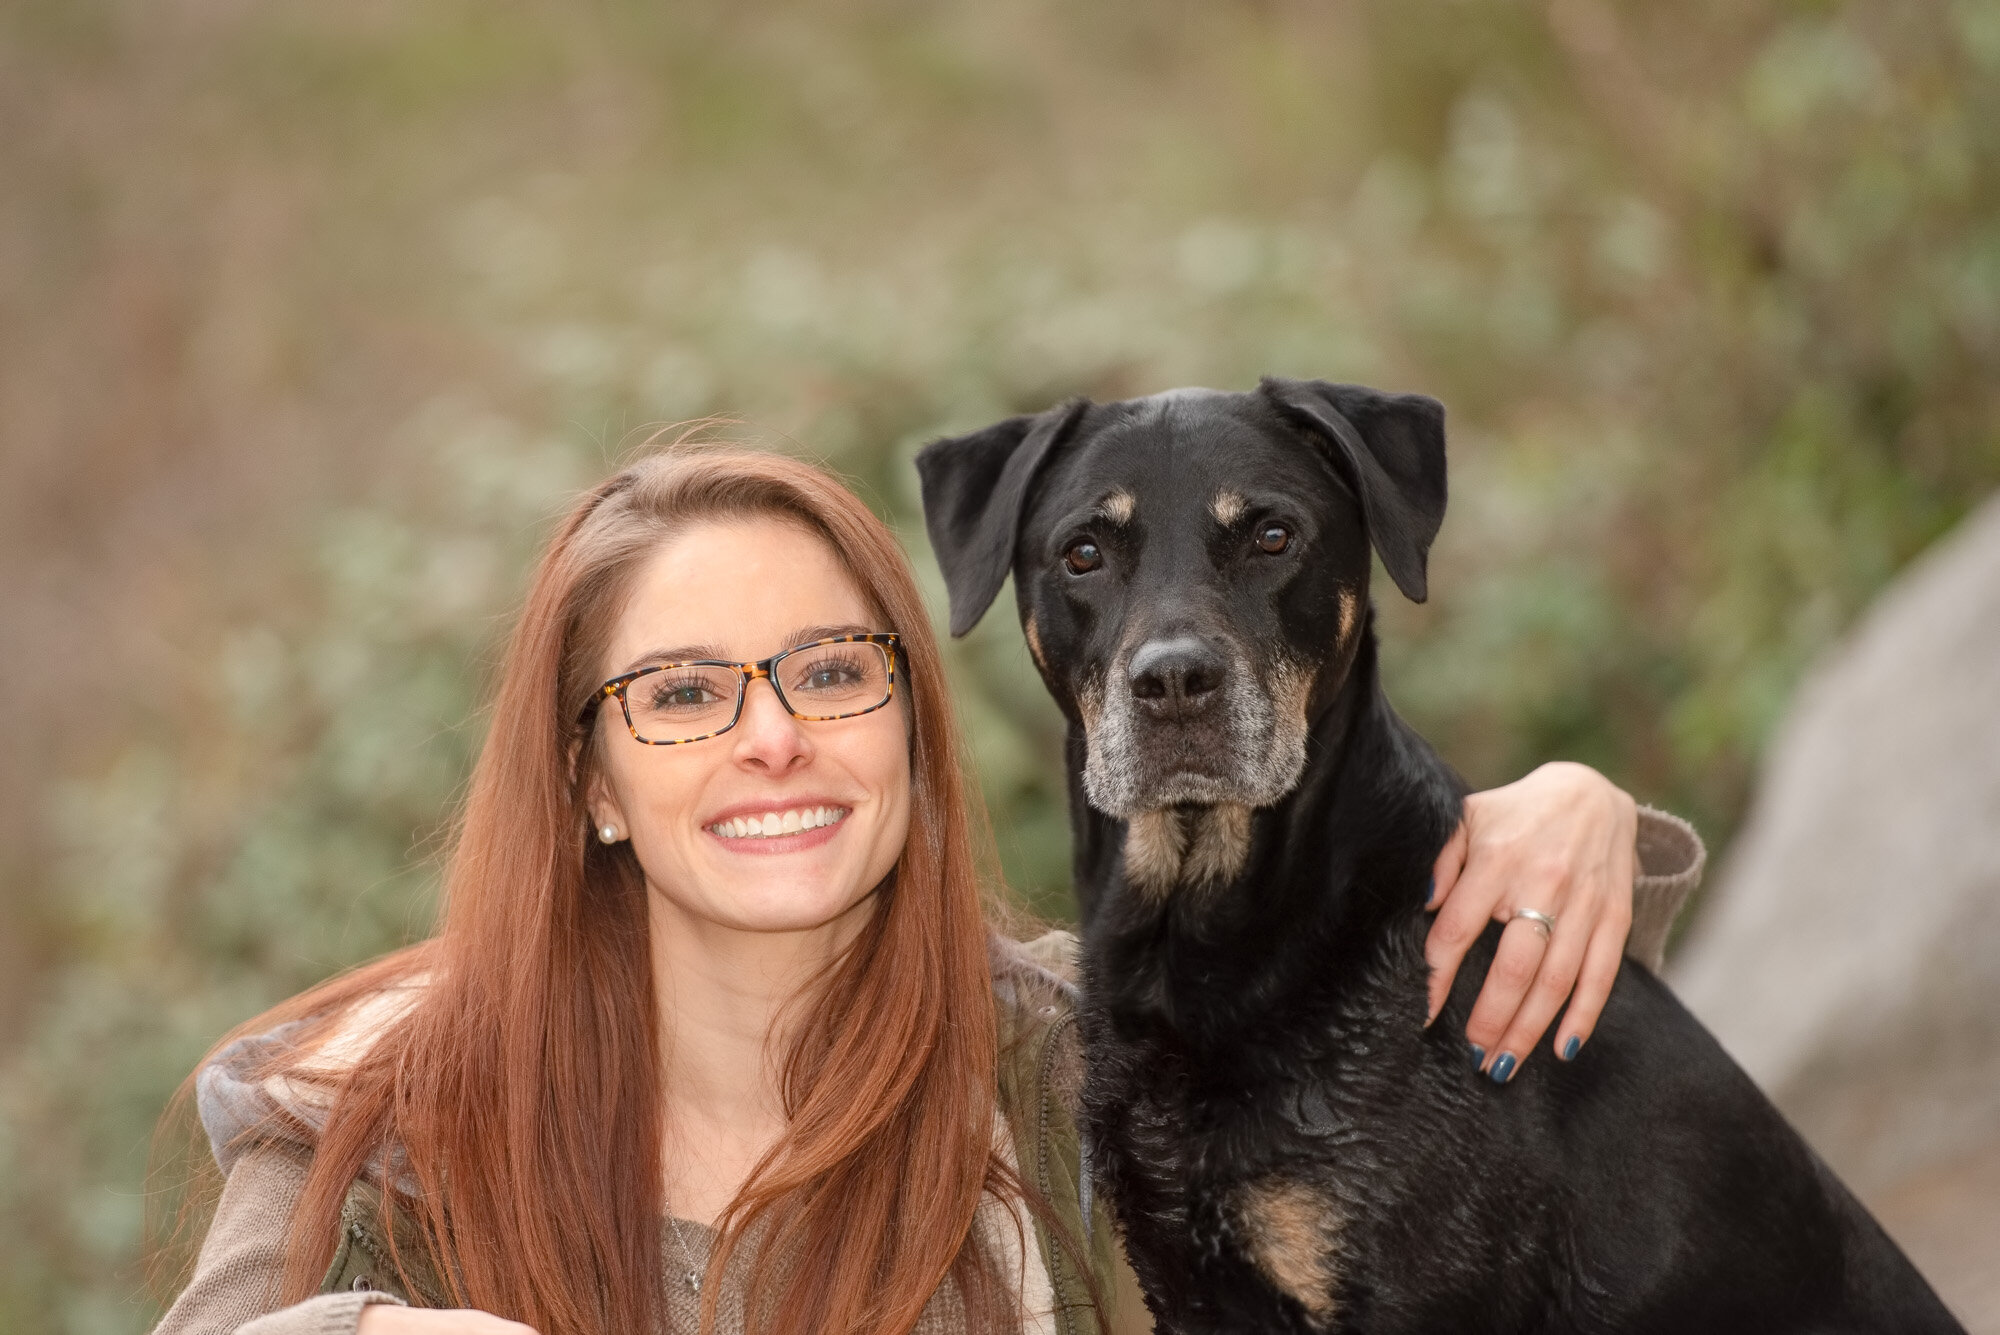 veterinarian and her dog